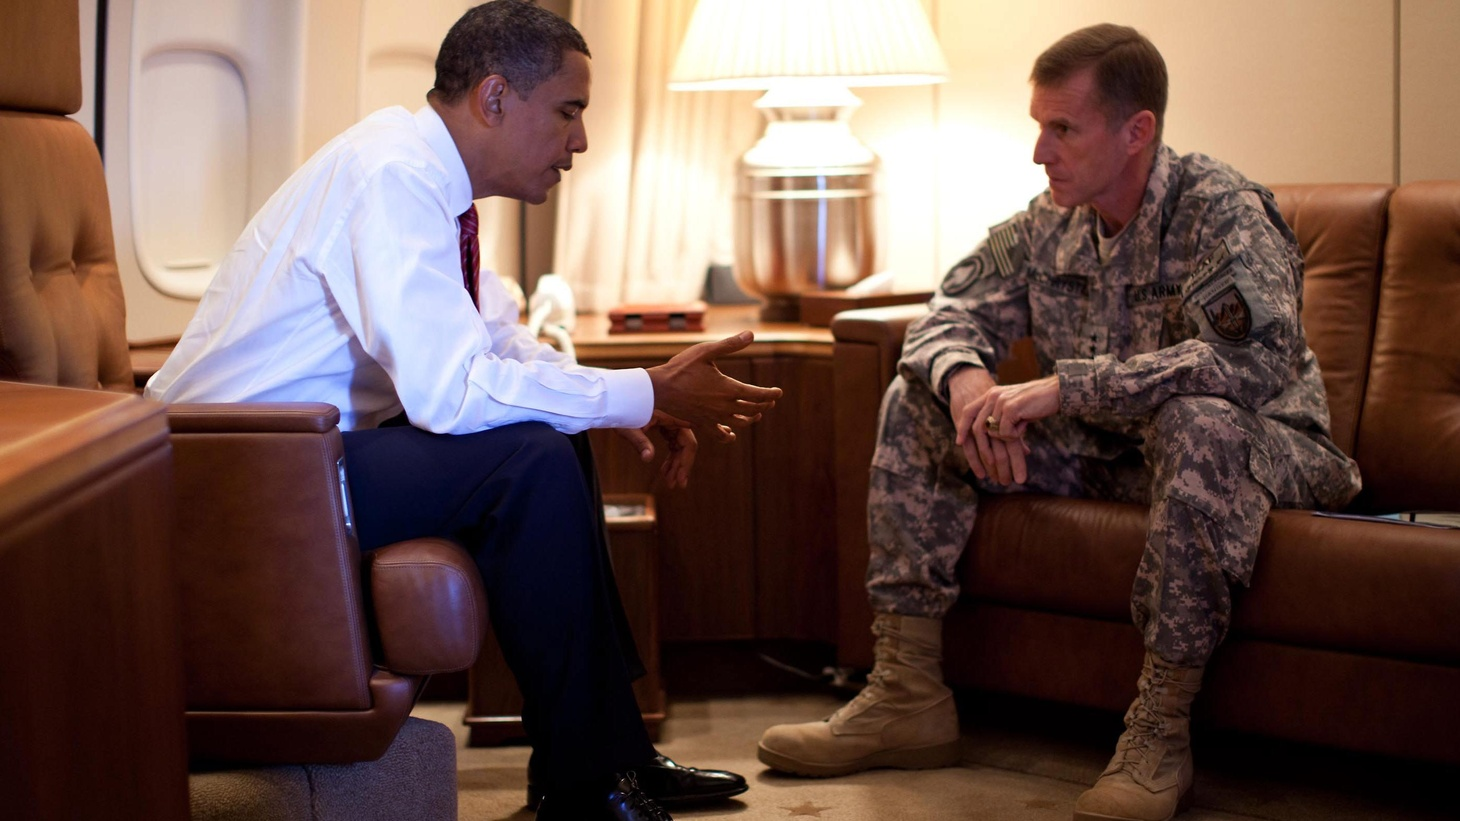 Barack Obama's hand-picked commander of troops in Afghanistan has apologized for trashing the President in Rolling Stone magazine. Should the Commander in Chief fire General Stanley McChrystal for disrespect and insubordination or keep him on board as too important to let go? Also, Fannie Mae and Freddie Mac are now fully owned and operated by the federal government, at a possible cost of $389 billion. Can US taxpayers afford to continue subsidizing home ownership, a federal policy since 1938?